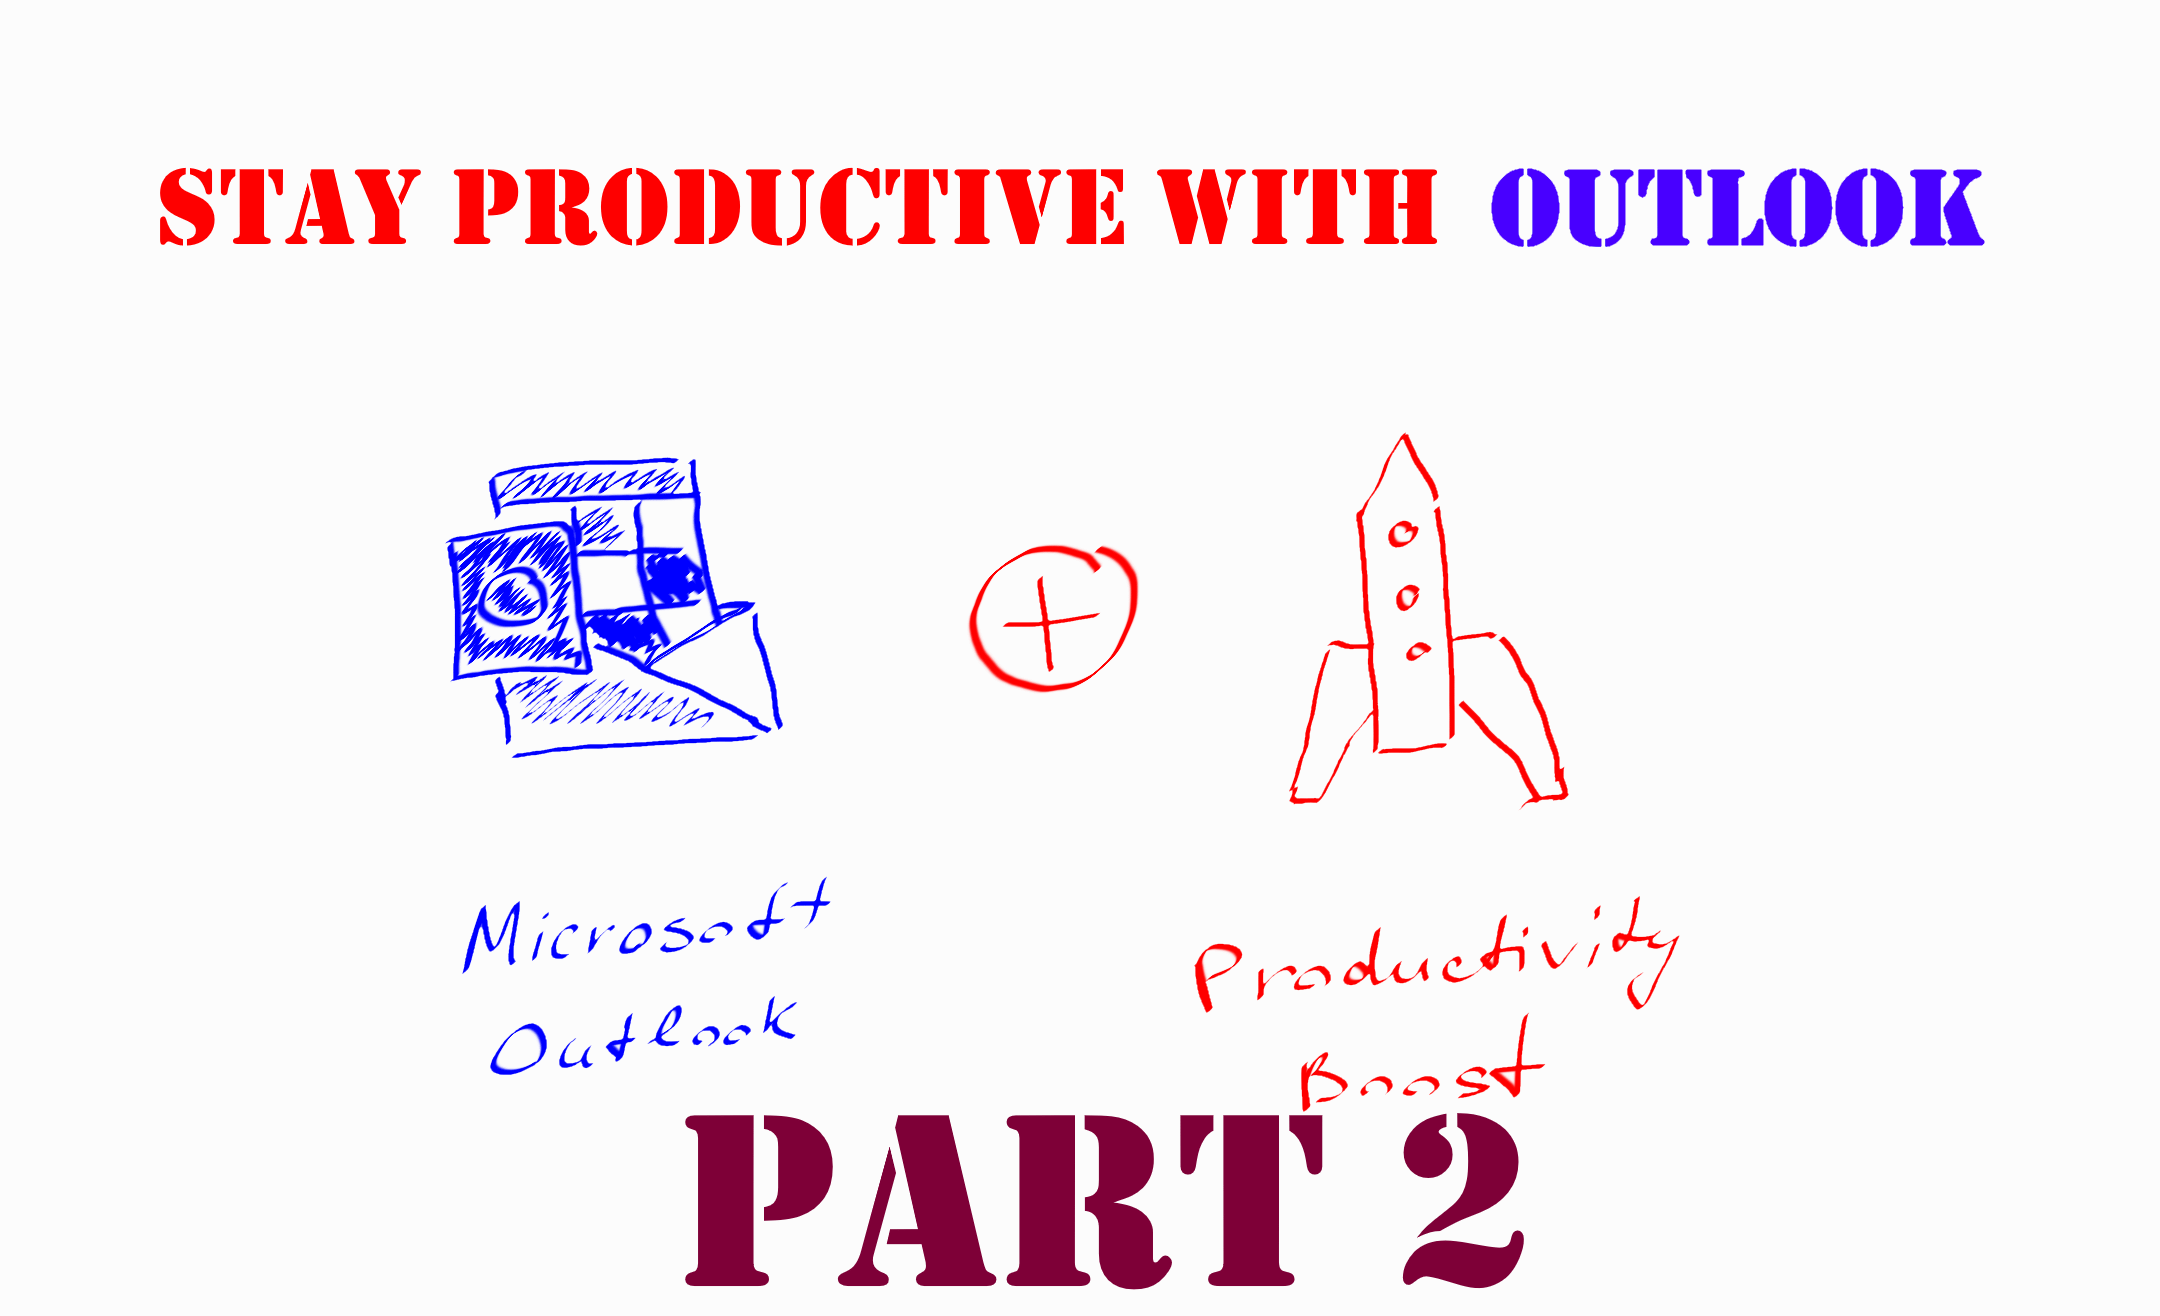 How to use Microsoft Outlook to stay productive - Part 2